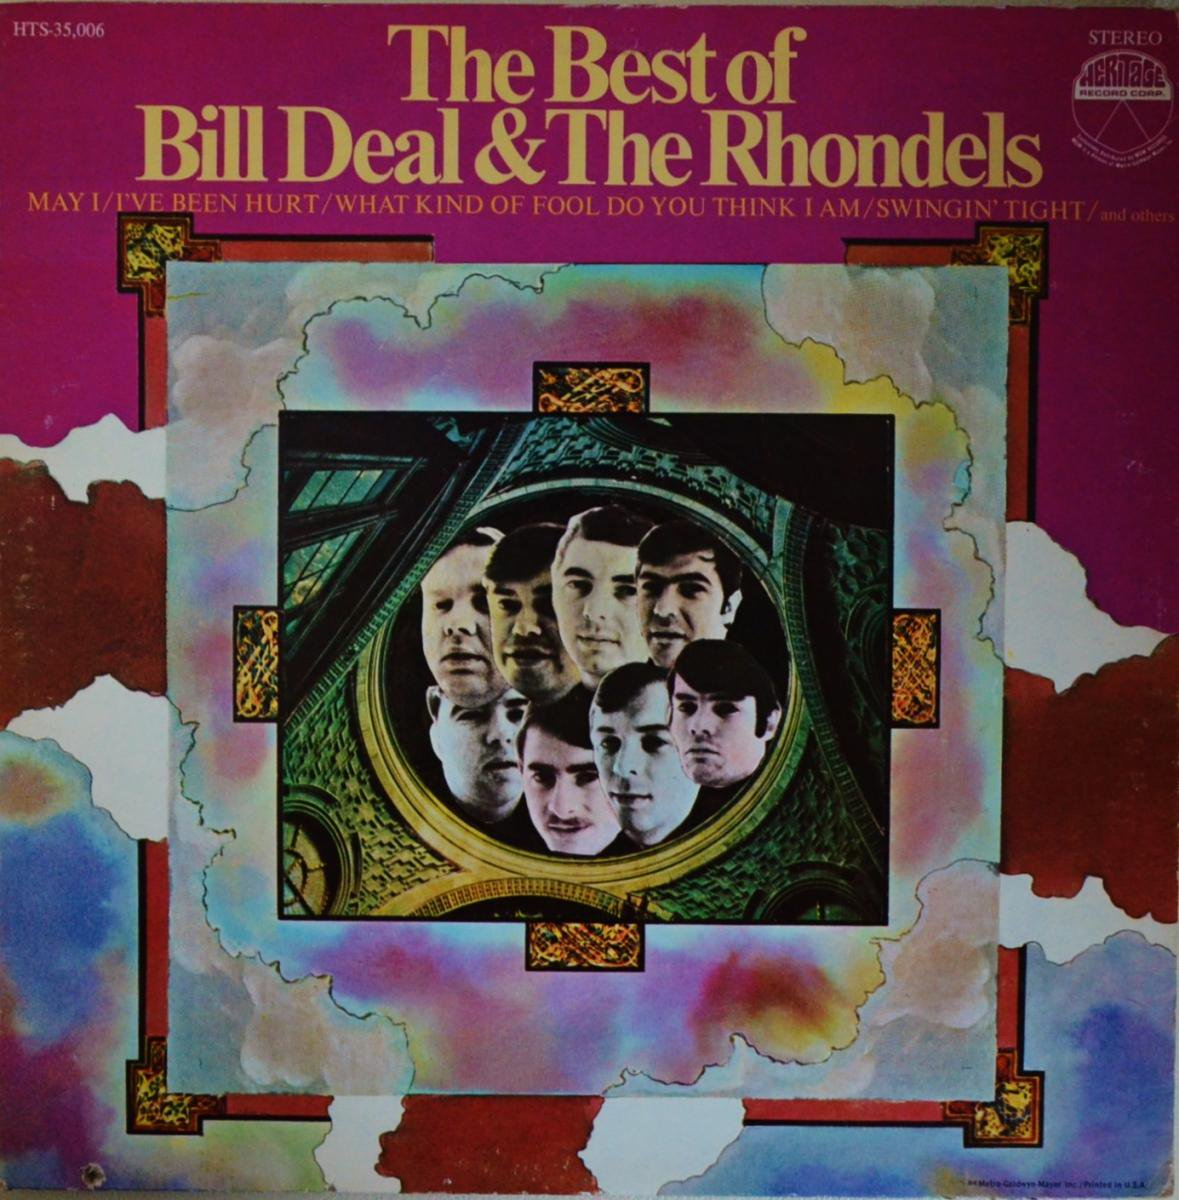 BILL DEAL & THE RHONDELS / THE BEST OF BILL DEAL & THE RHONDELS (LP)